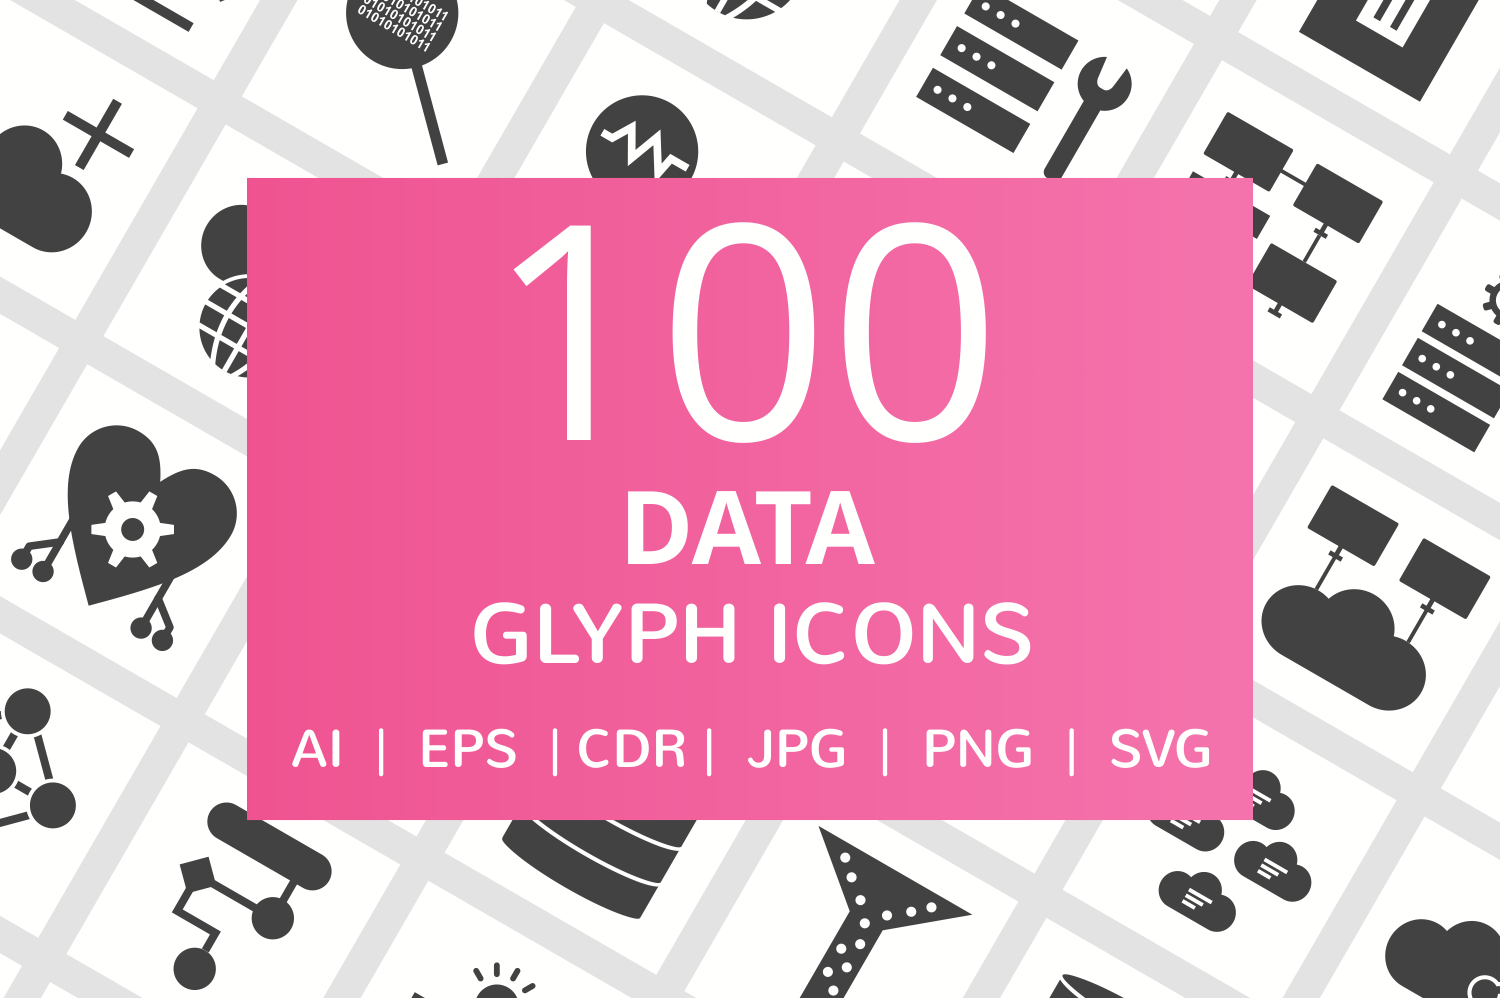 100 Data Glyph Icons example image 1